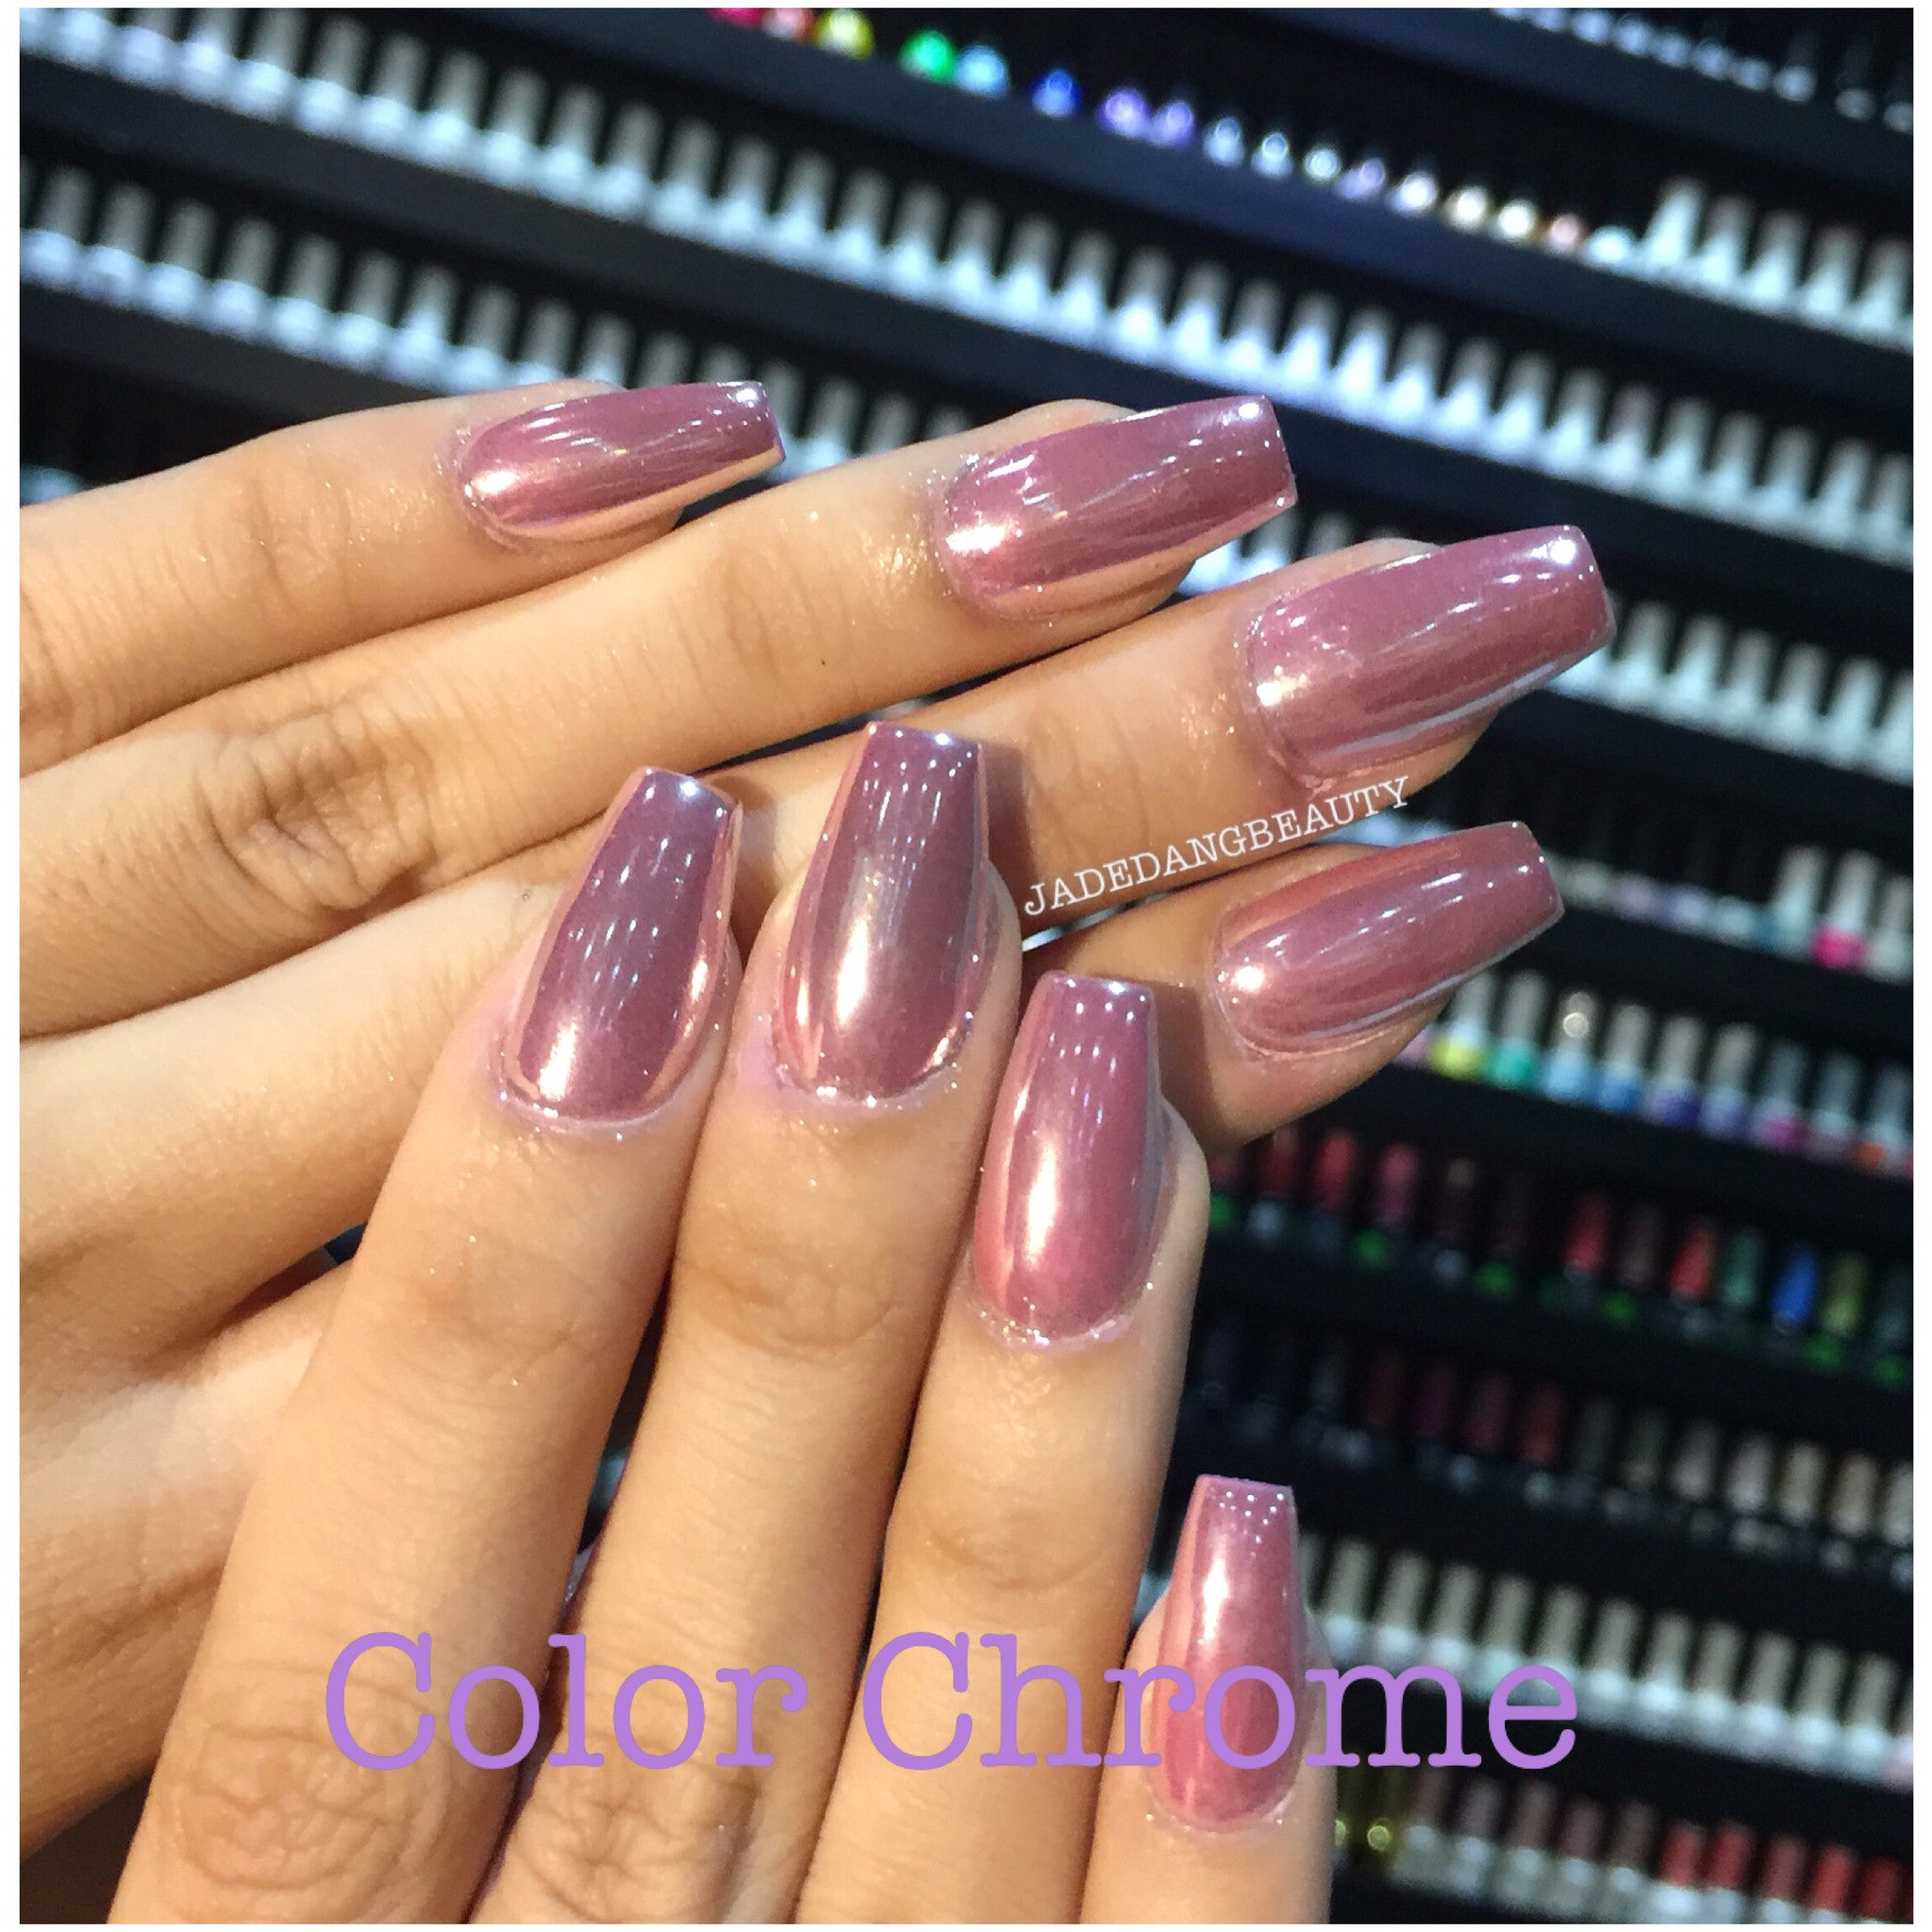 Holo / Chrome / Fairy Dust / Gossip Gel – Oh Snap! Beauty Supply